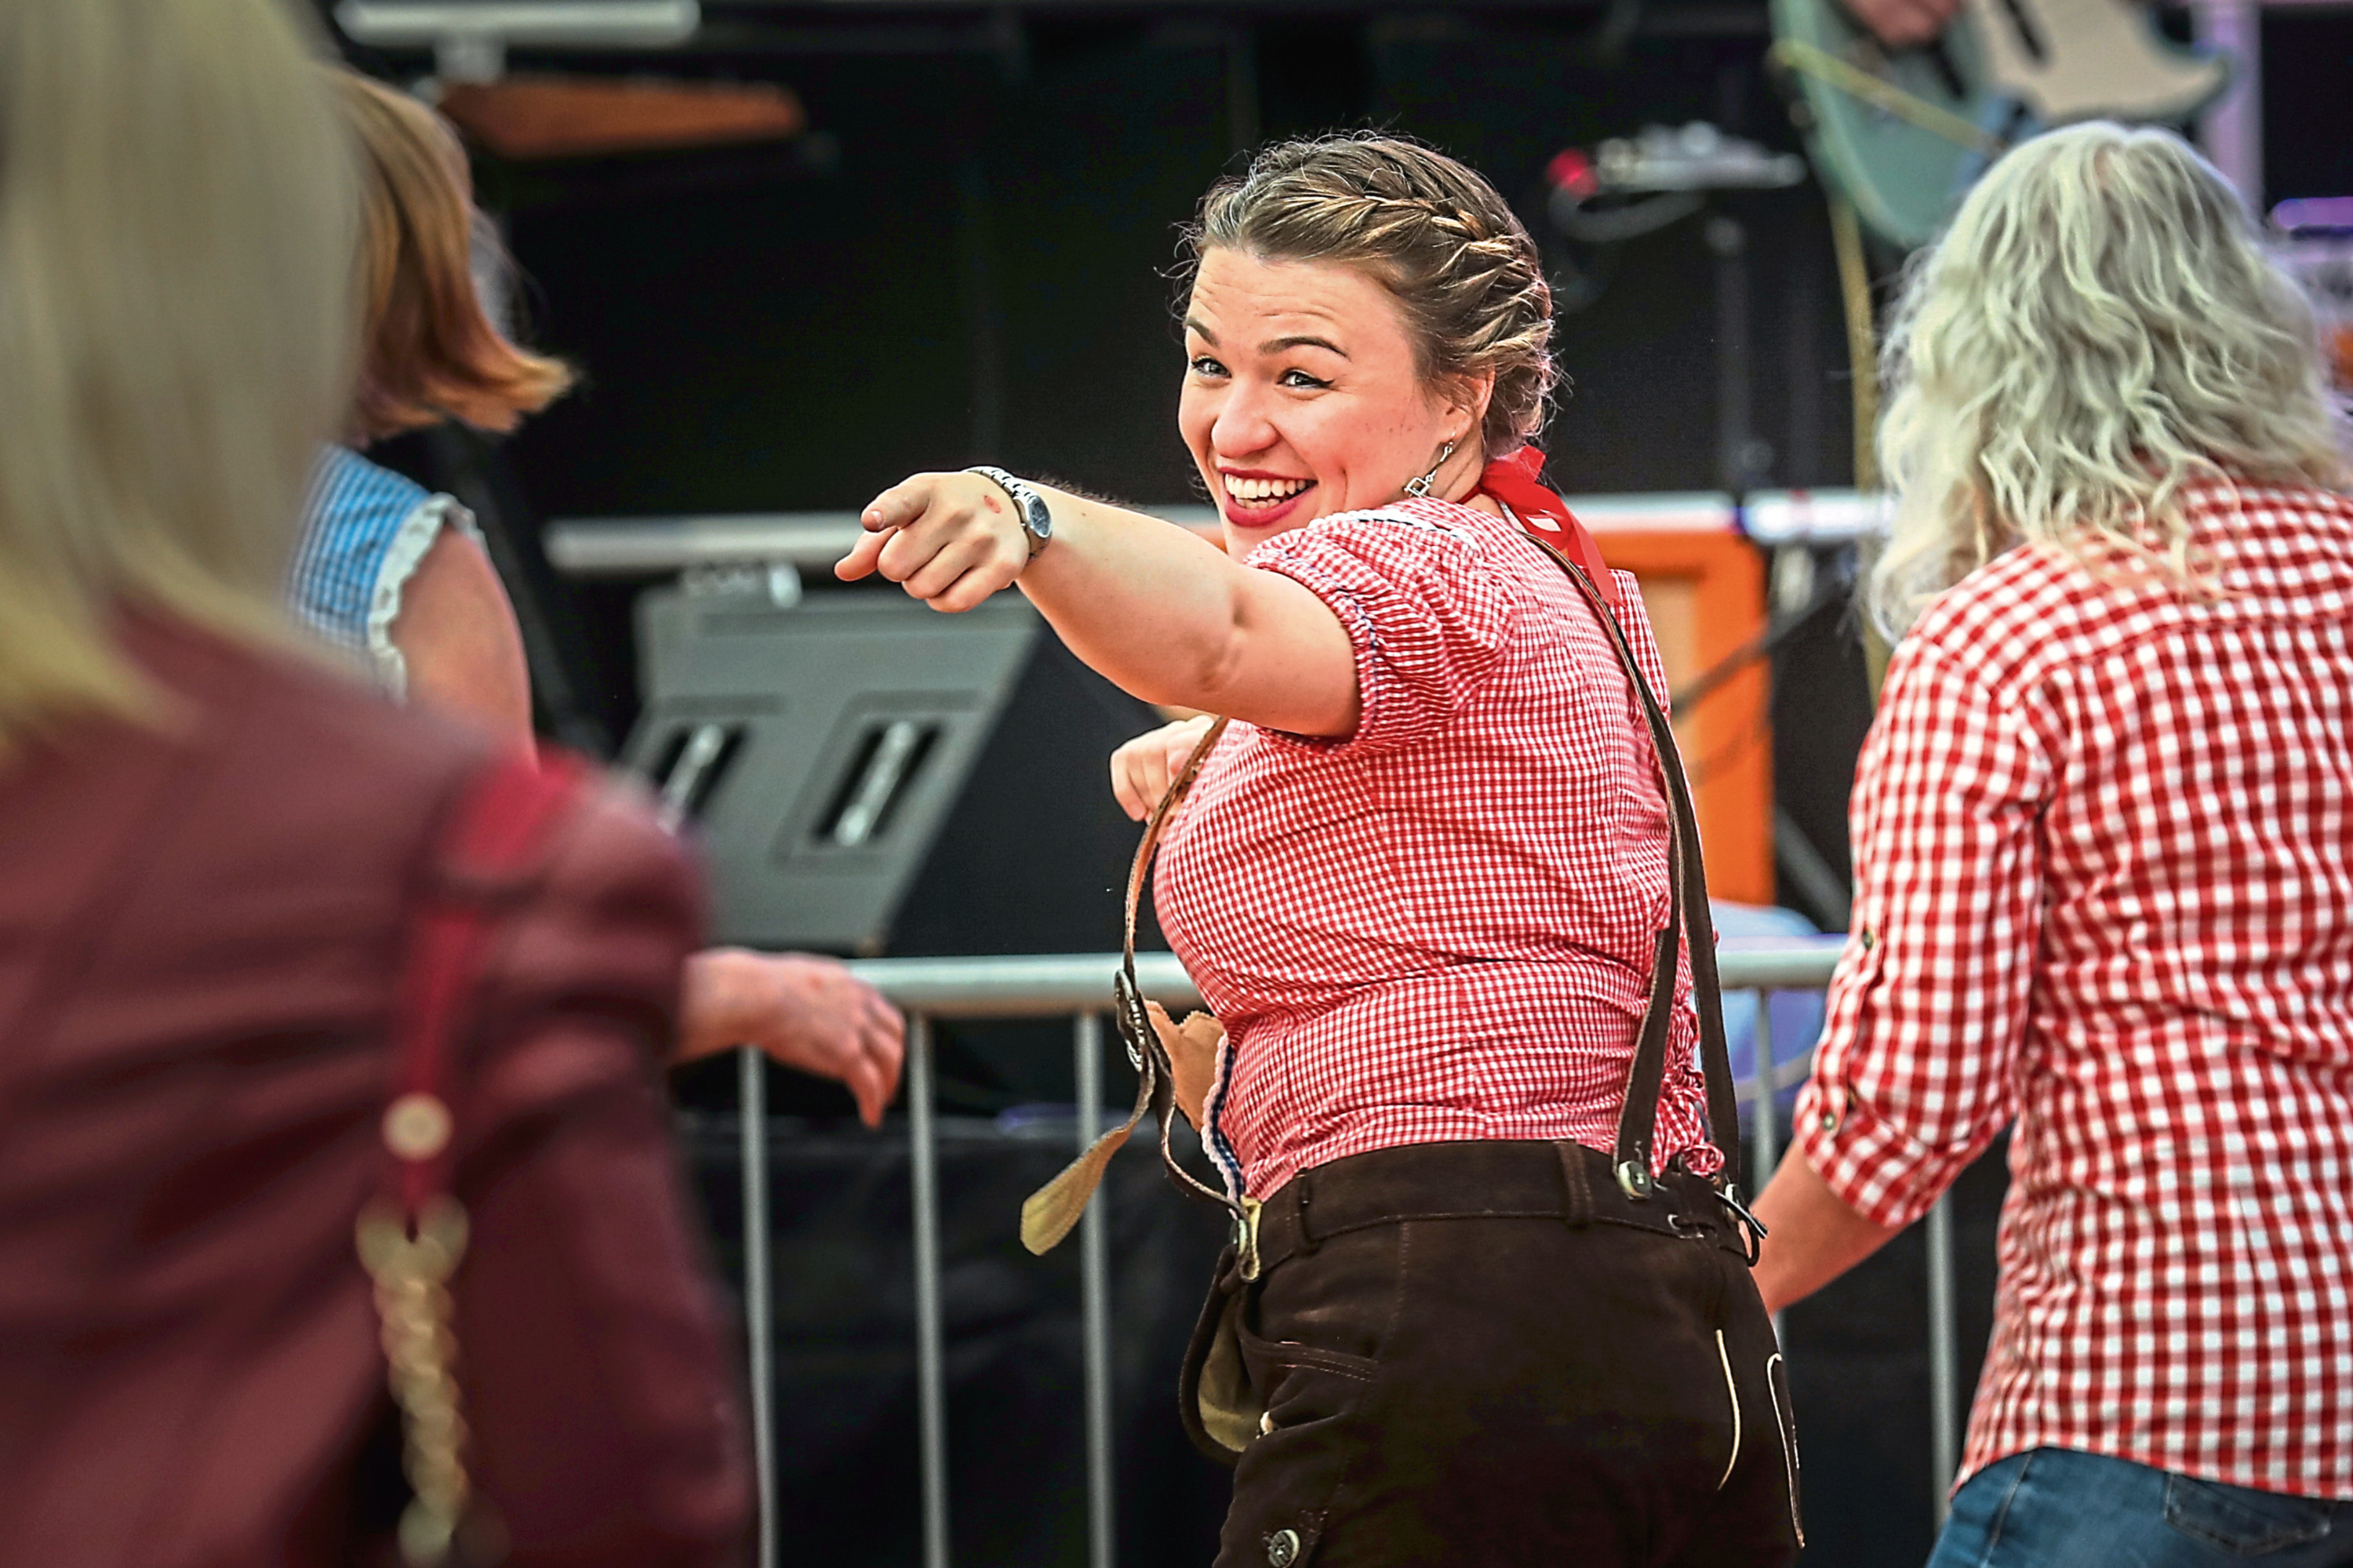 The Courier, CR0014754, News, Scott Milne story, Oktoberfest is now in full swing with crowds enjoying drinks, live music etc down at Slessor Gardens. Picture shows; the crowds enjoying listening and dancing to the band 'Captain Jack'. Saturday 28th September, 2019. Mhairi Edwards/DCT Media